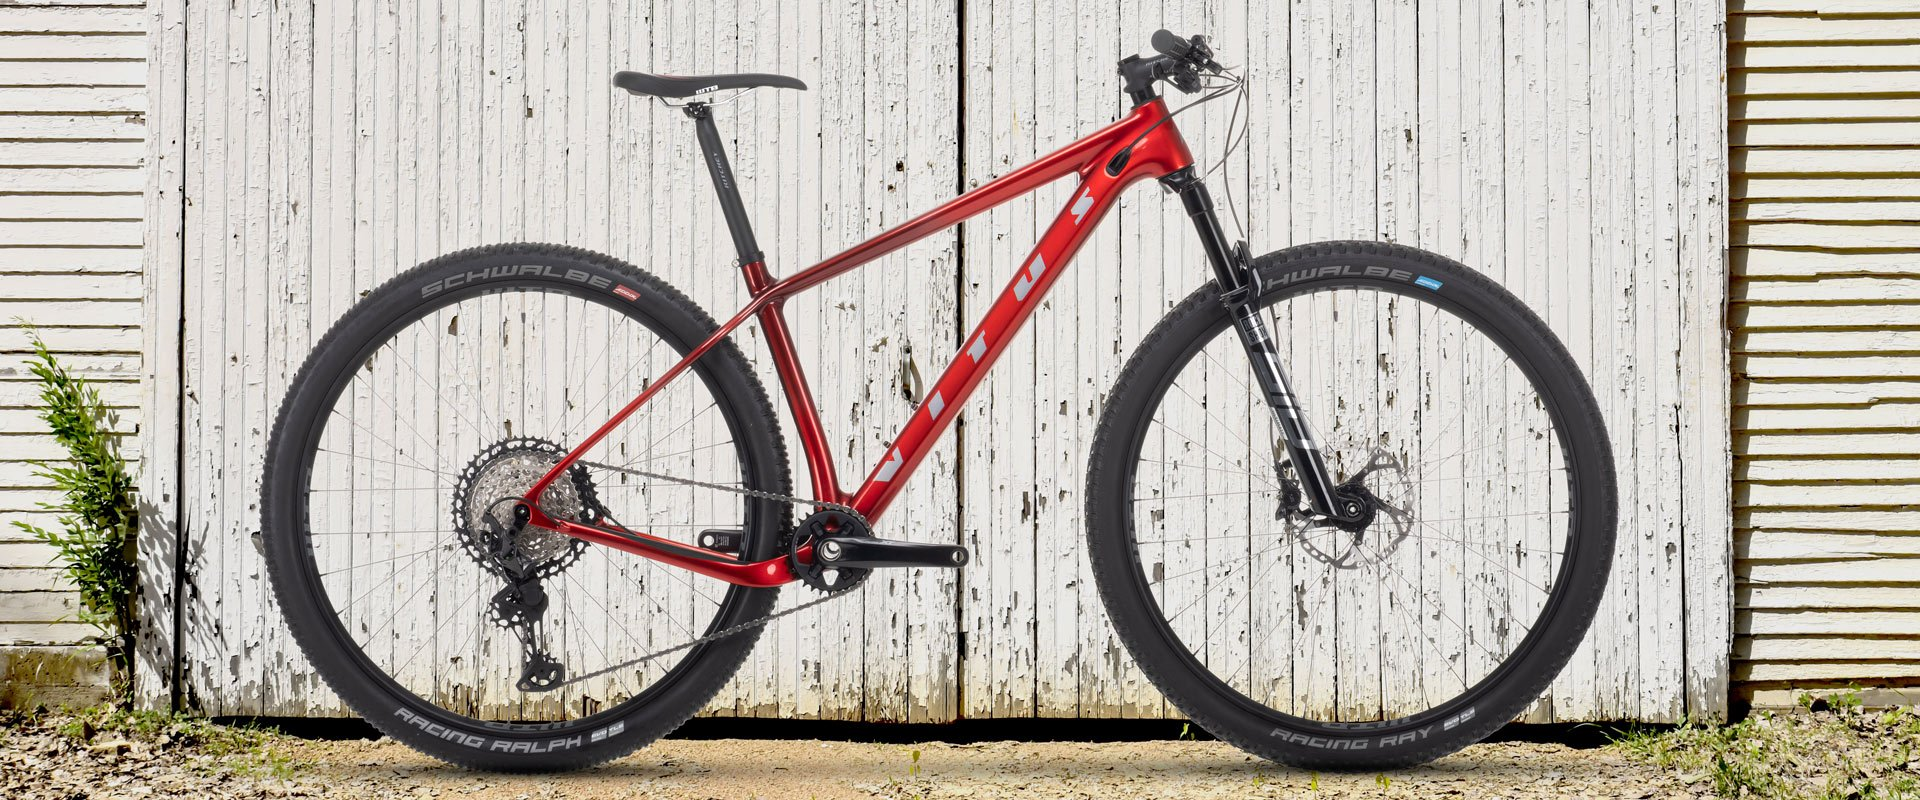 Vitus Rapide 29 CRX Mountain Bike